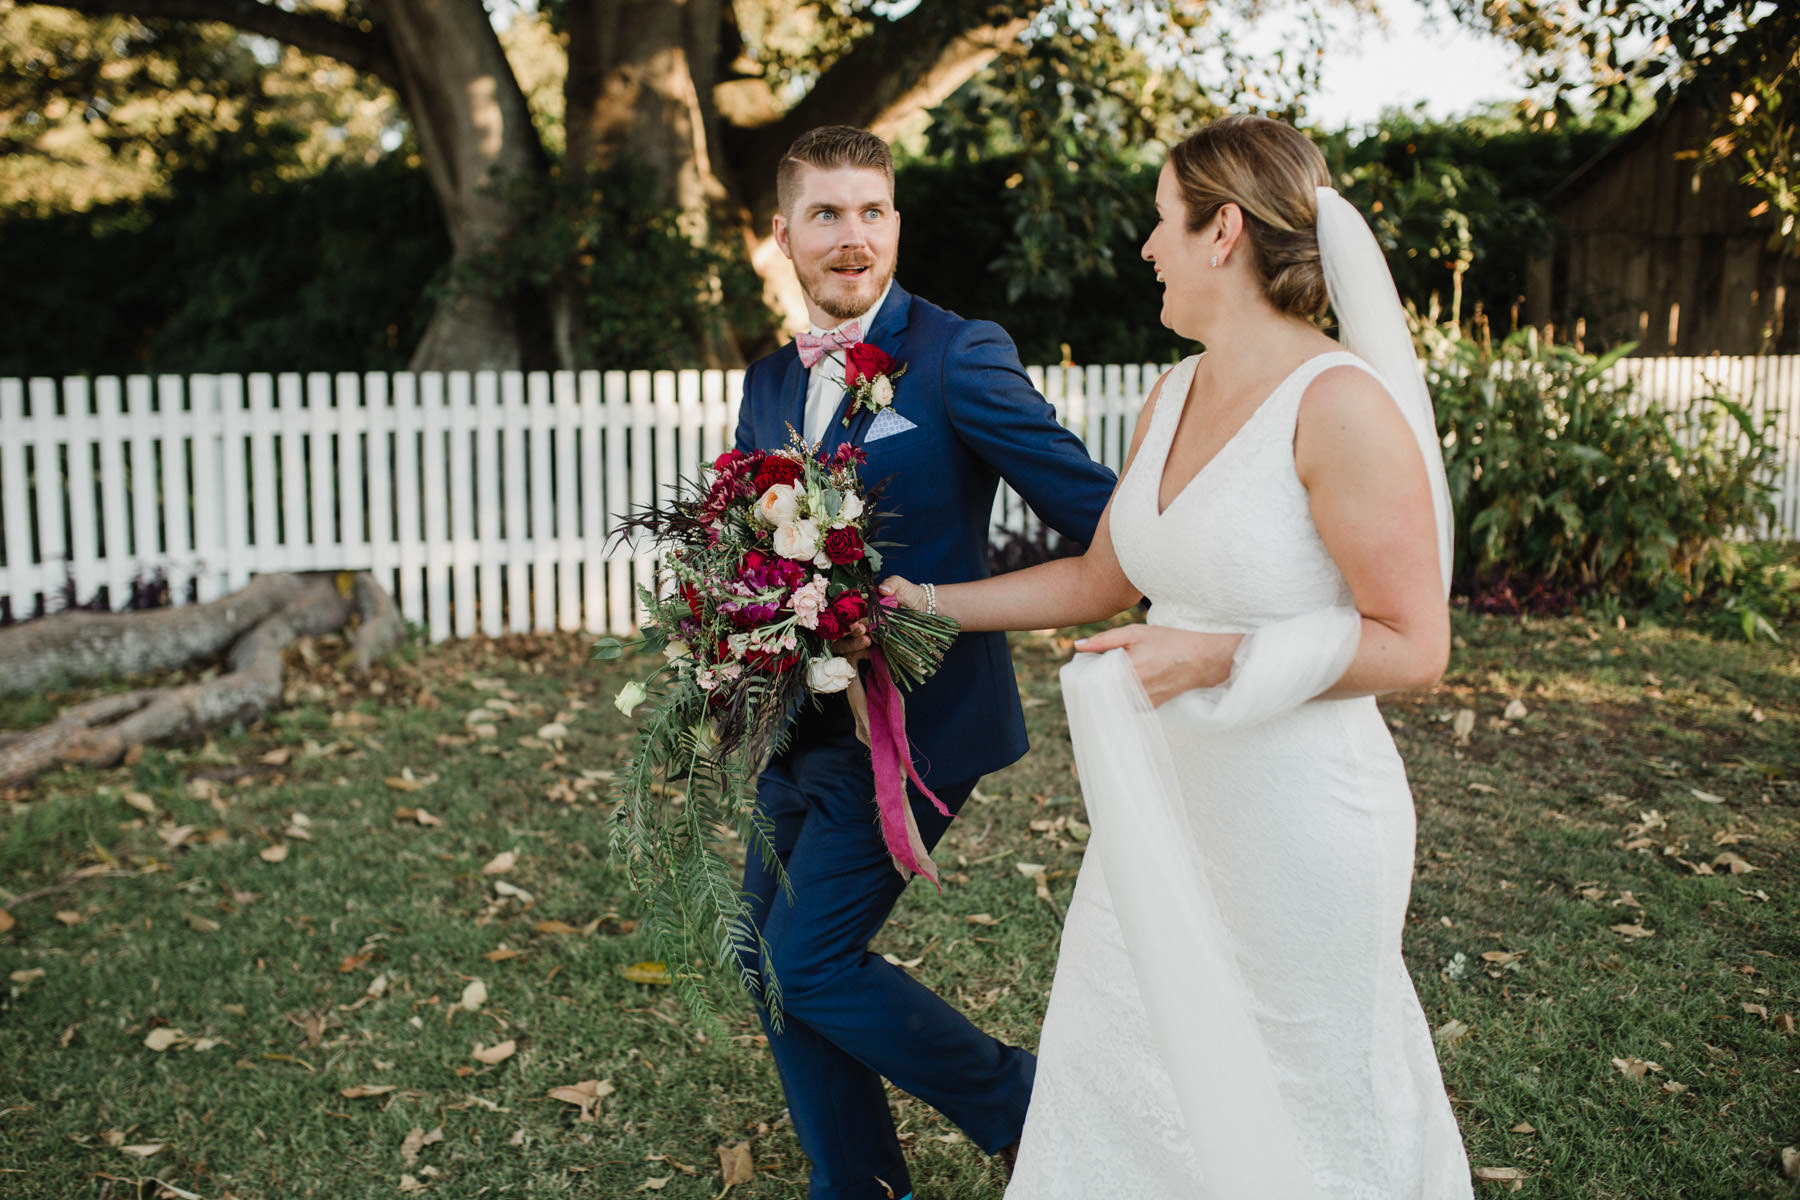 086Hunter Valley Wedding Photographers Bryce Noone Photography at Tocal Homestead Wedding Venue.jpg